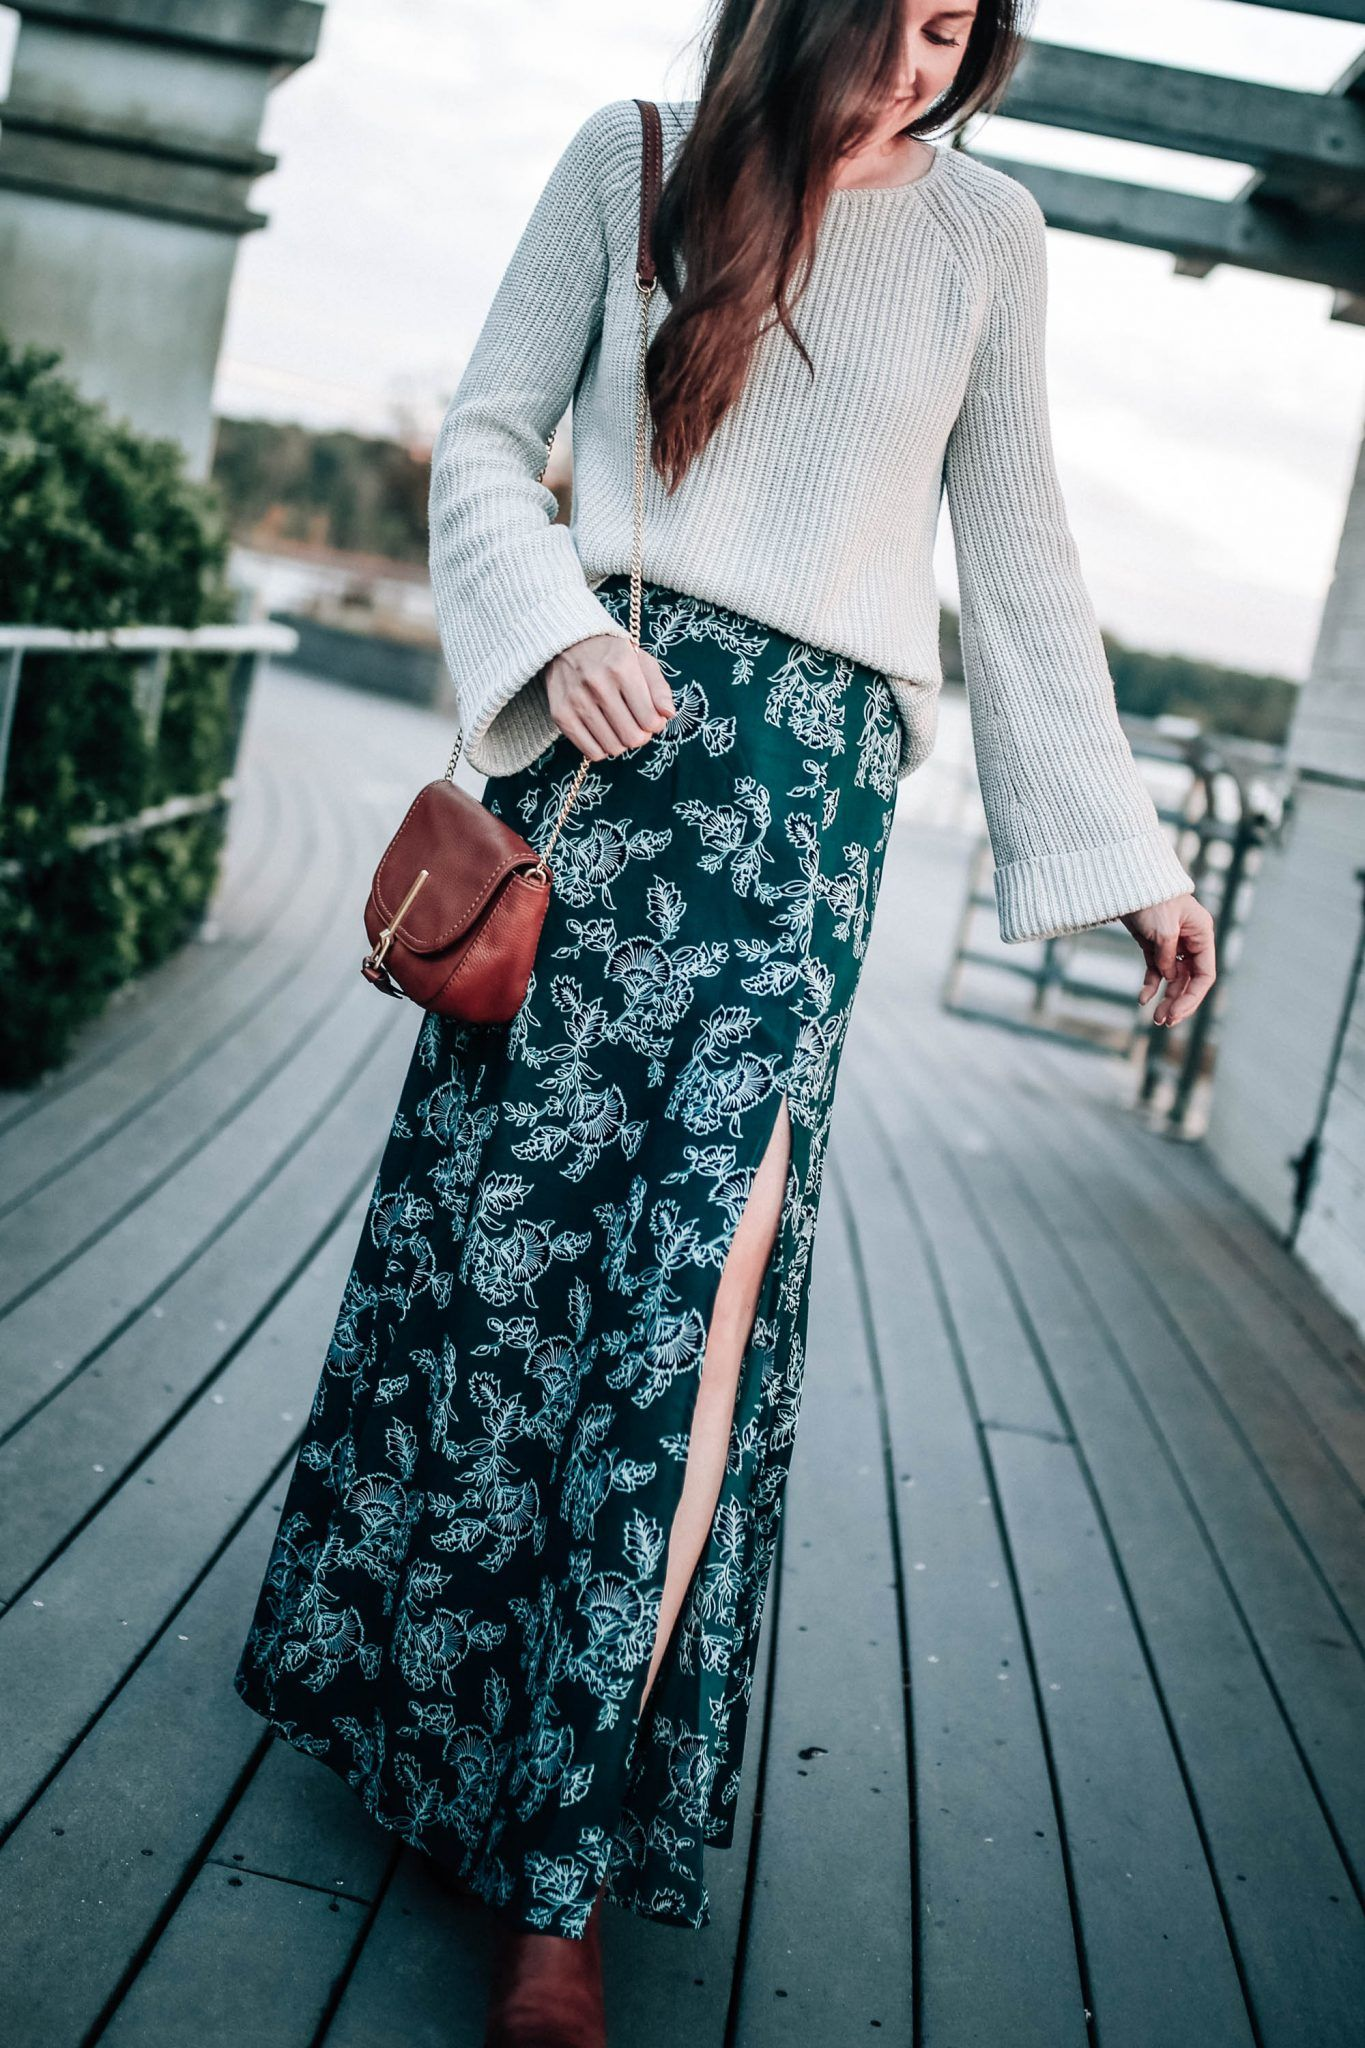 Maxi Skirt Under 40 Pretty In The Pines New York City Lifestyle Blog Maxi Dress Outfit Fall Sweater Maxi Dress Ribbed Maxi Dress [ 2048 x 1365 Pixel ]